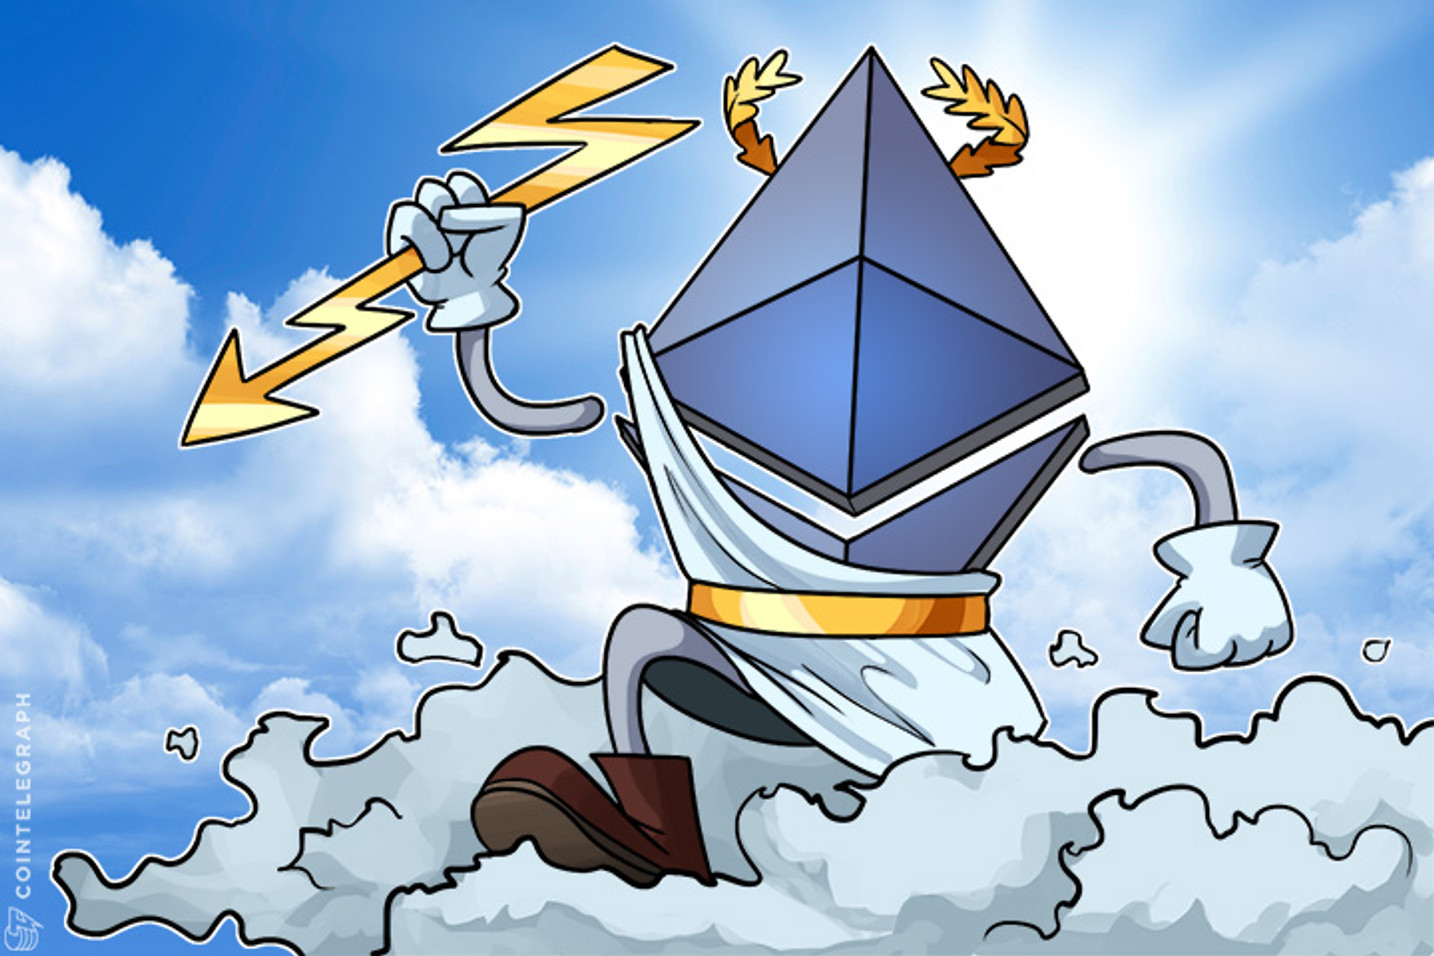 Repeating Bitcoin Price Fall With Ethereum Gain Will Cause Flippening: Bruce Fenton